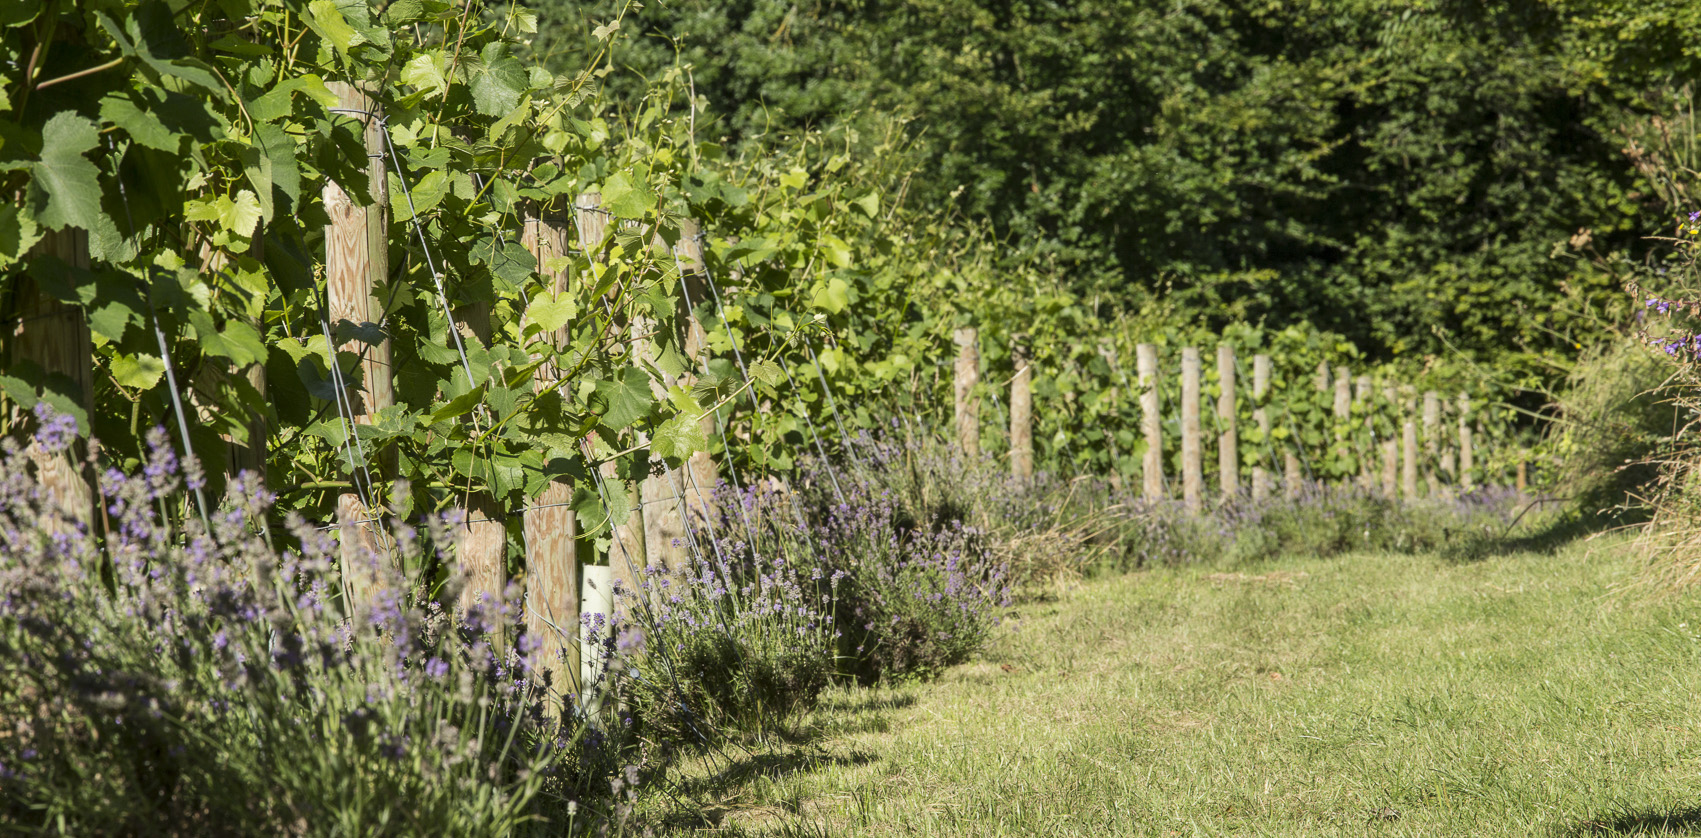 East Meon Vineyard